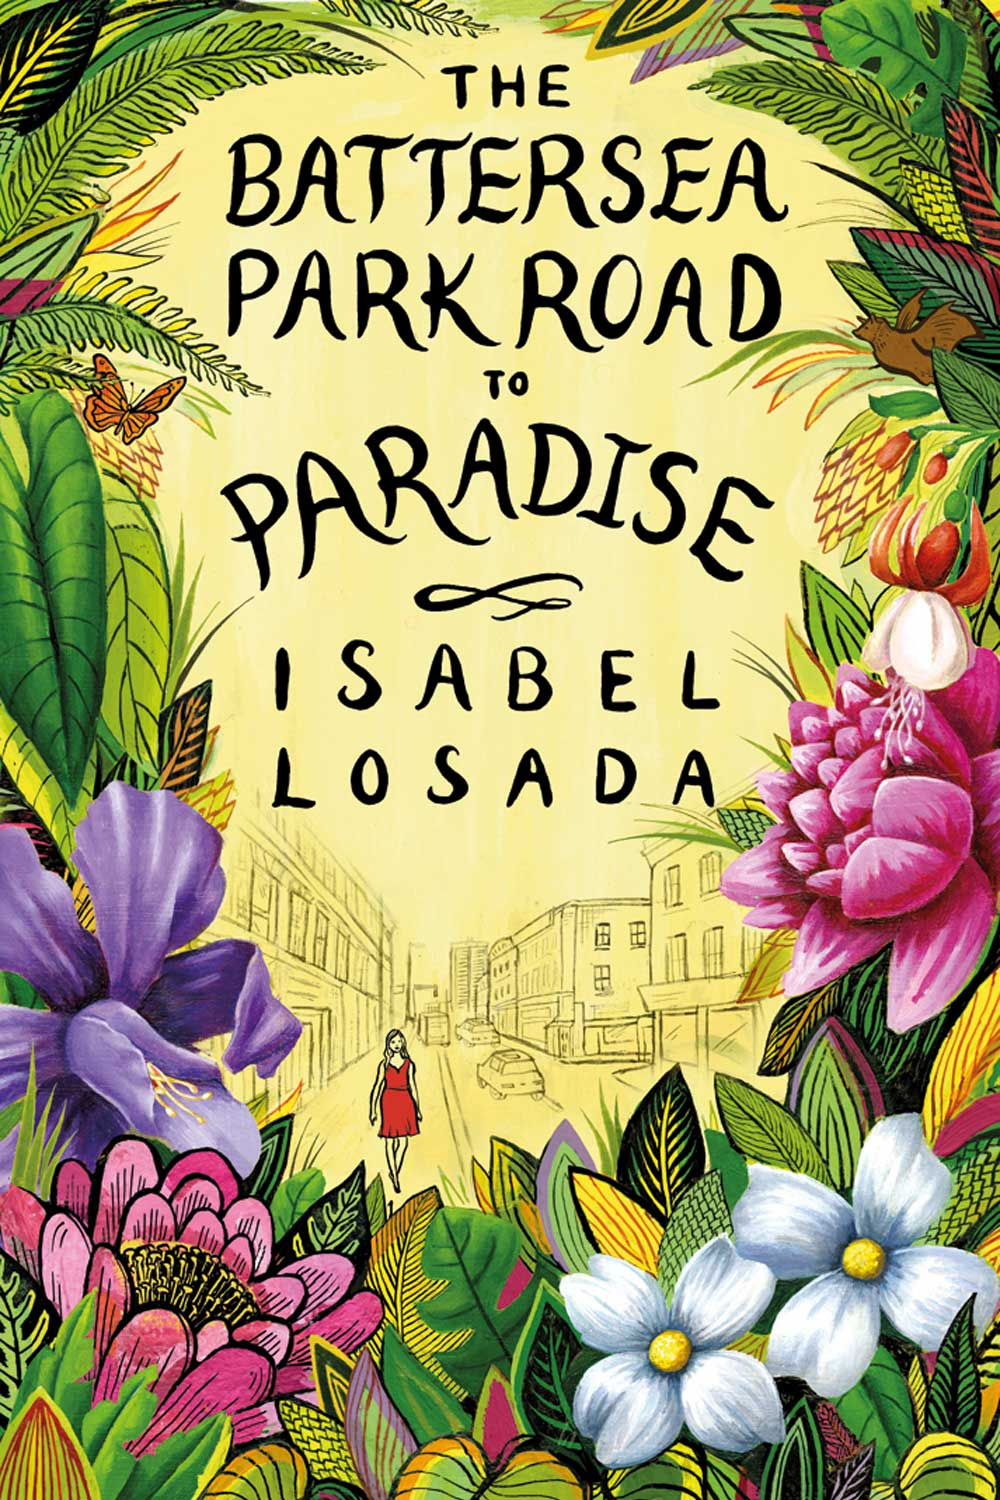 The_Battersea_Park_Road_to_Paradise_Isabel_Losada